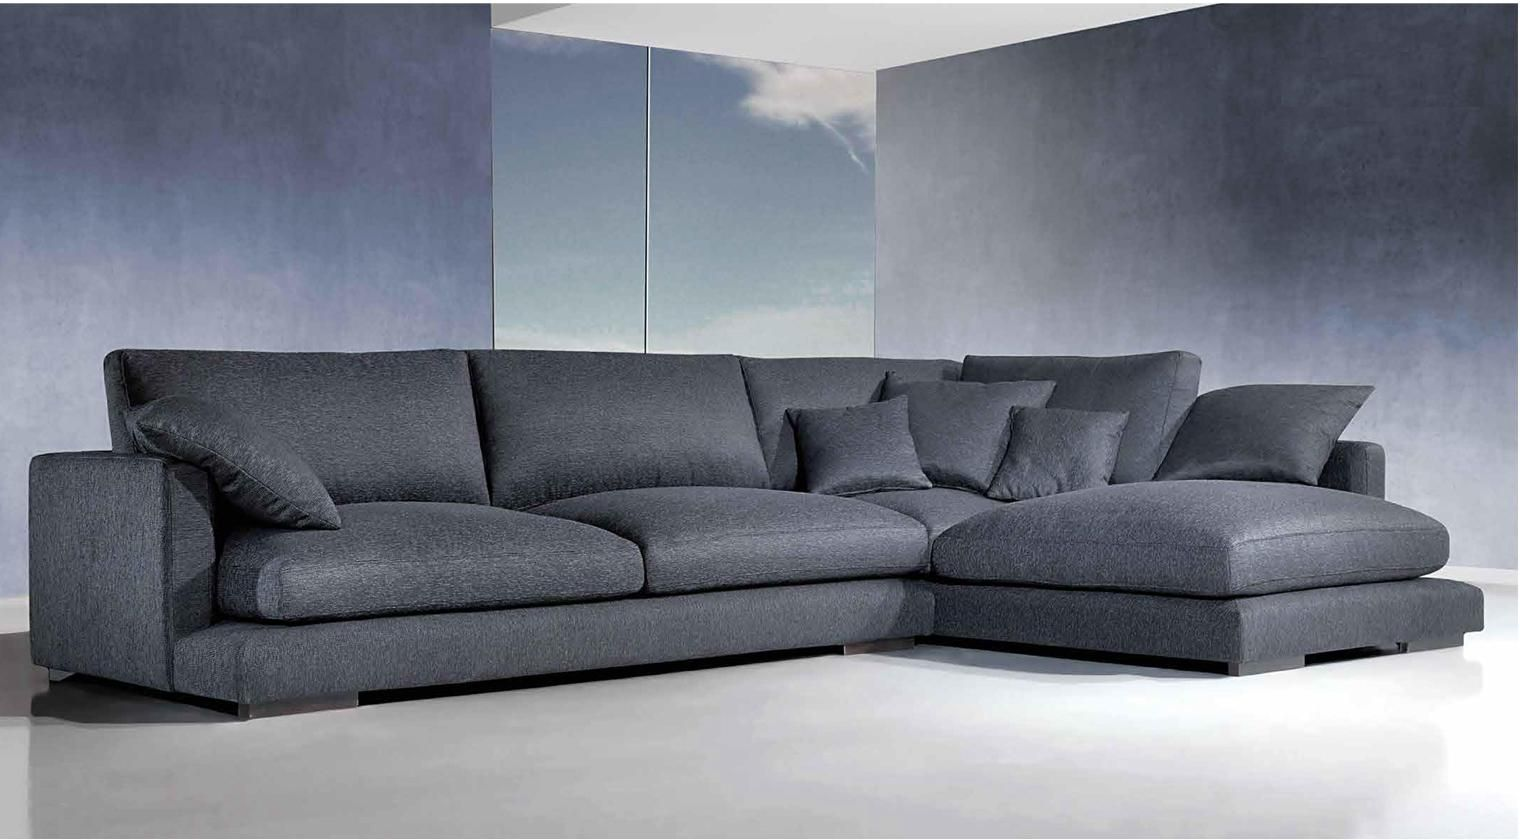 Imagen-Chaise-Longue-Tela-PERSEO-2